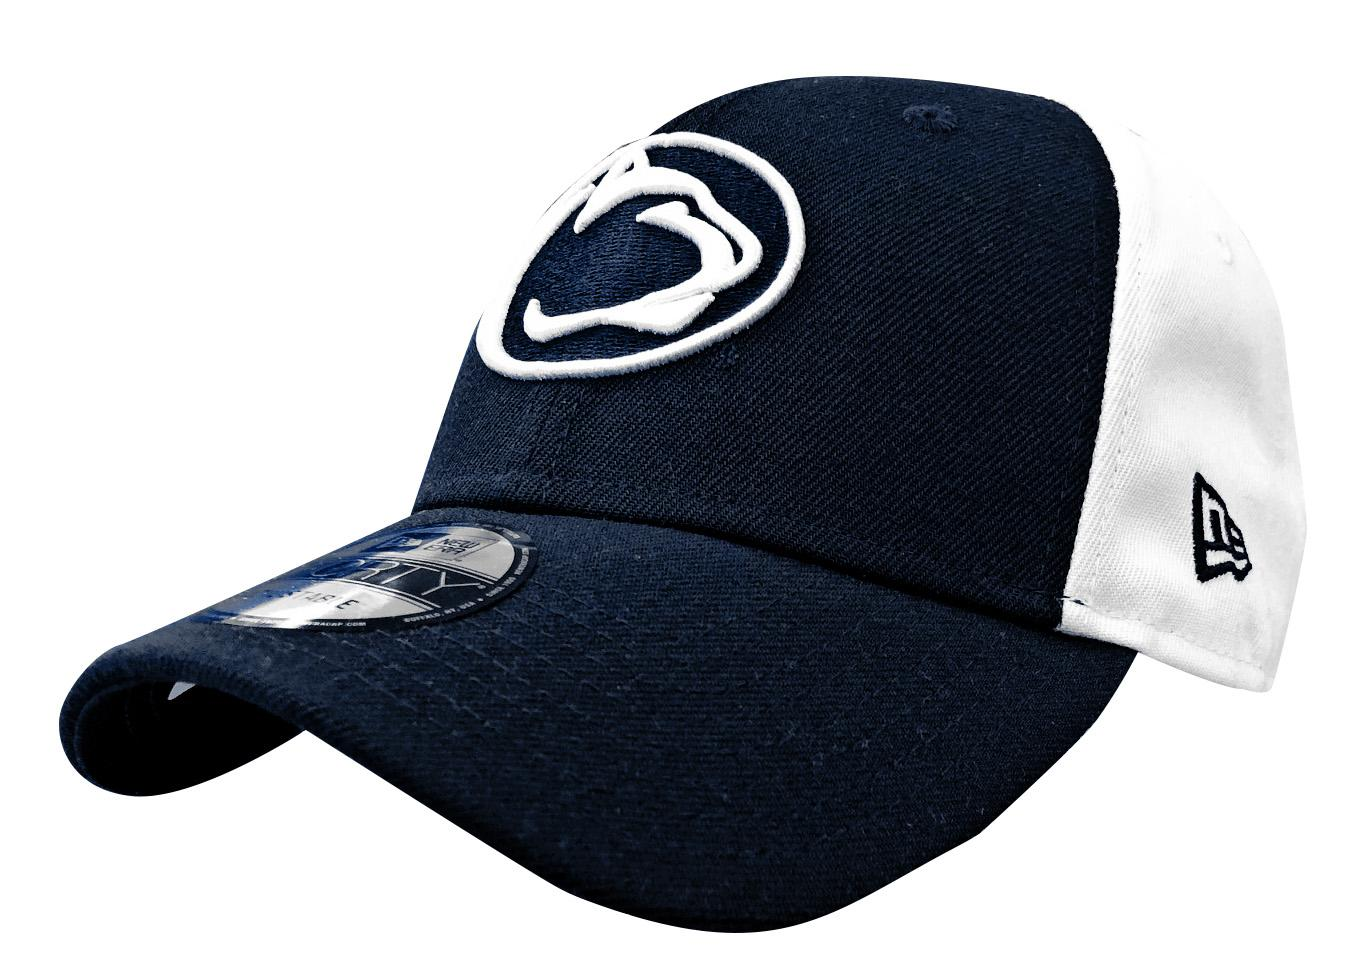 online store 40806 20caf Penn State Adult NE Blocked Team Hat   Headwear   HATS   ADJUSTABLE